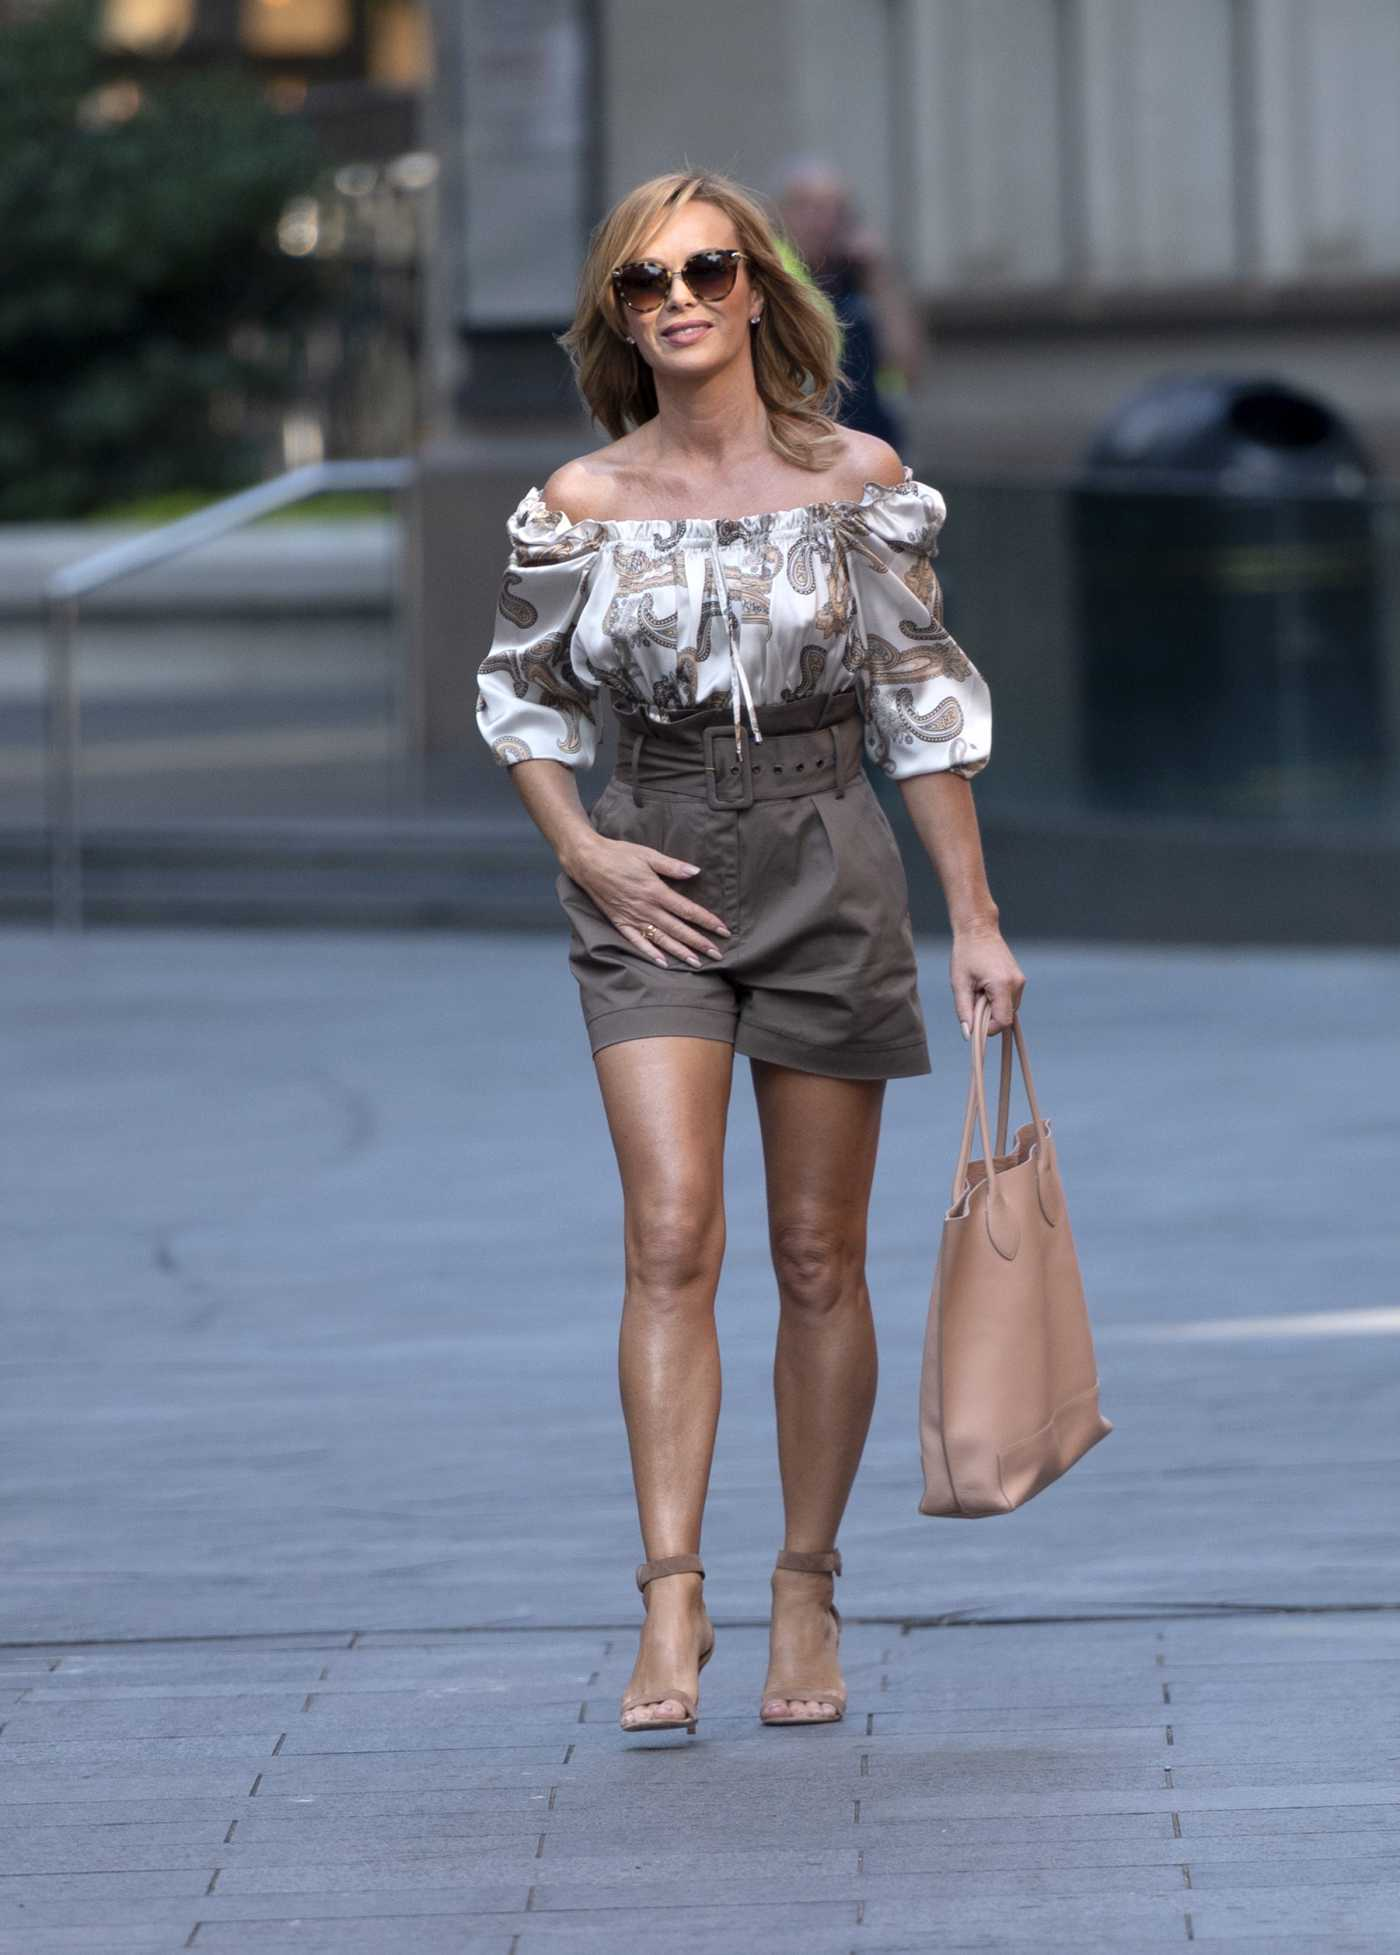 Amanda Holden in a Brown Shorts Arrives at the Global Radio Studios in London 09/14/2020